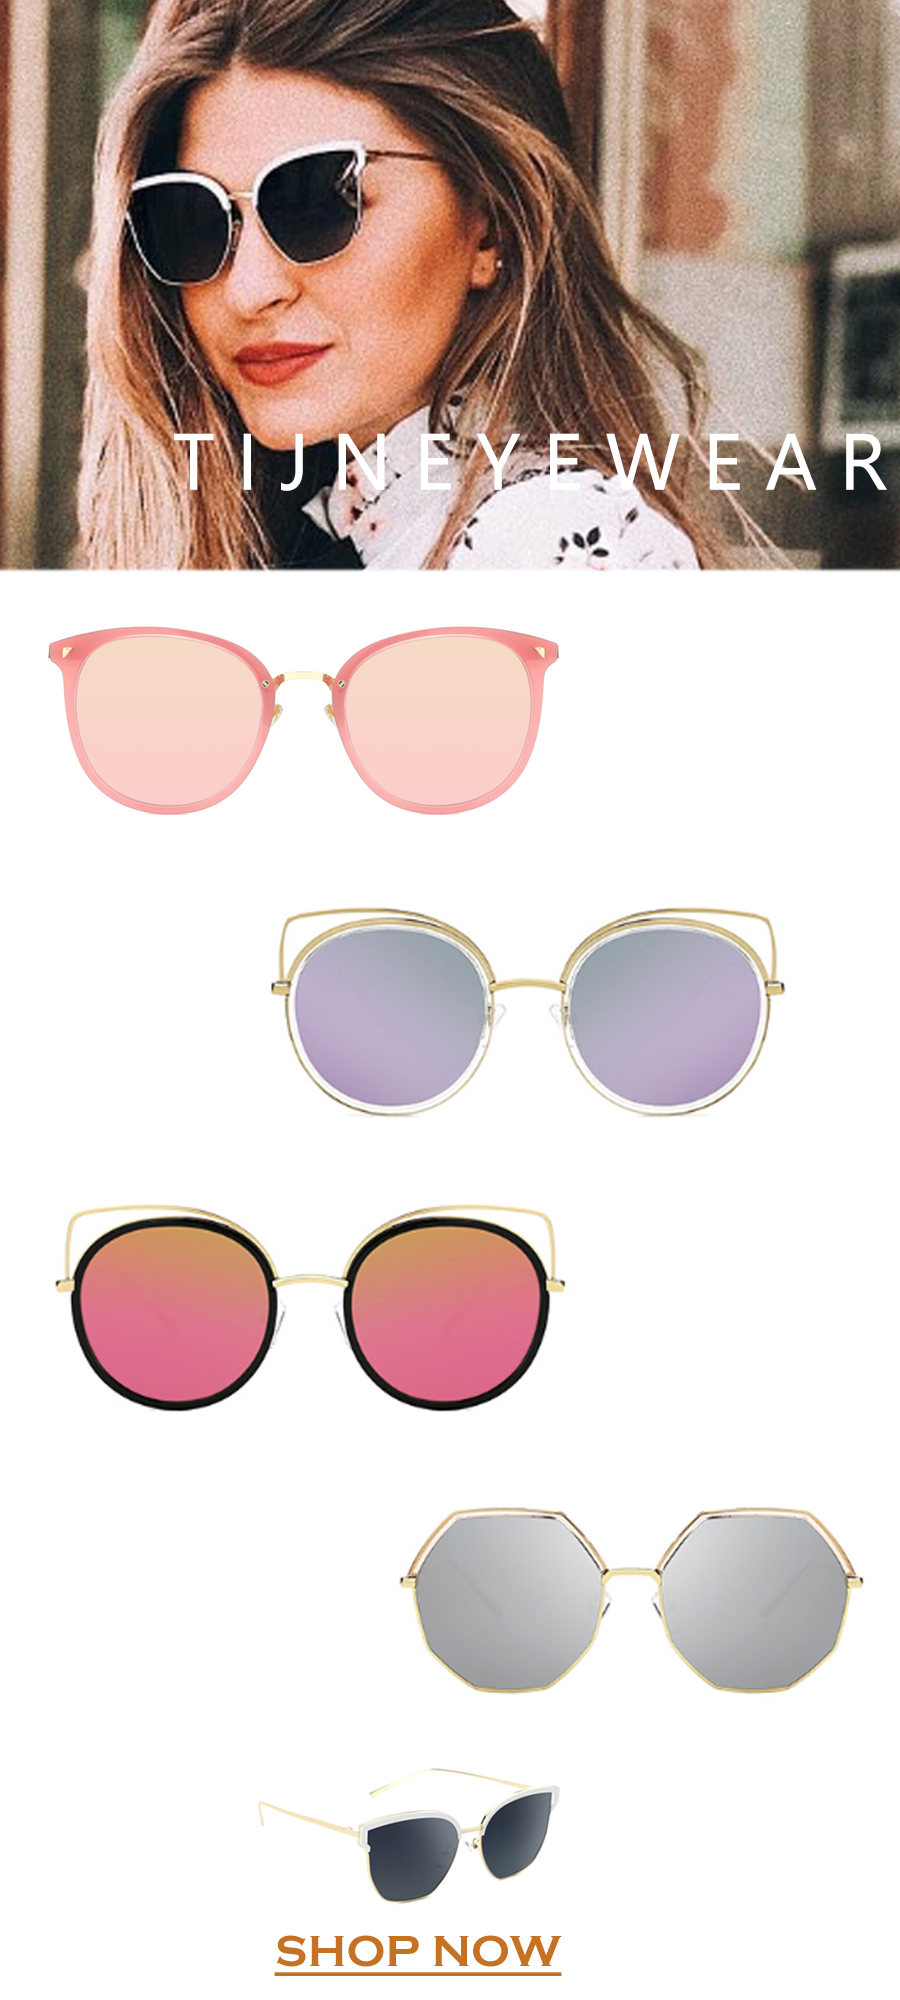 6c743dbfa6a0 Top 5 sunglasses for this summer you never wanna miss. #TIJNeyewear # sunglasses #fashion#glasses#fashion #trend #2018 summer #back to school